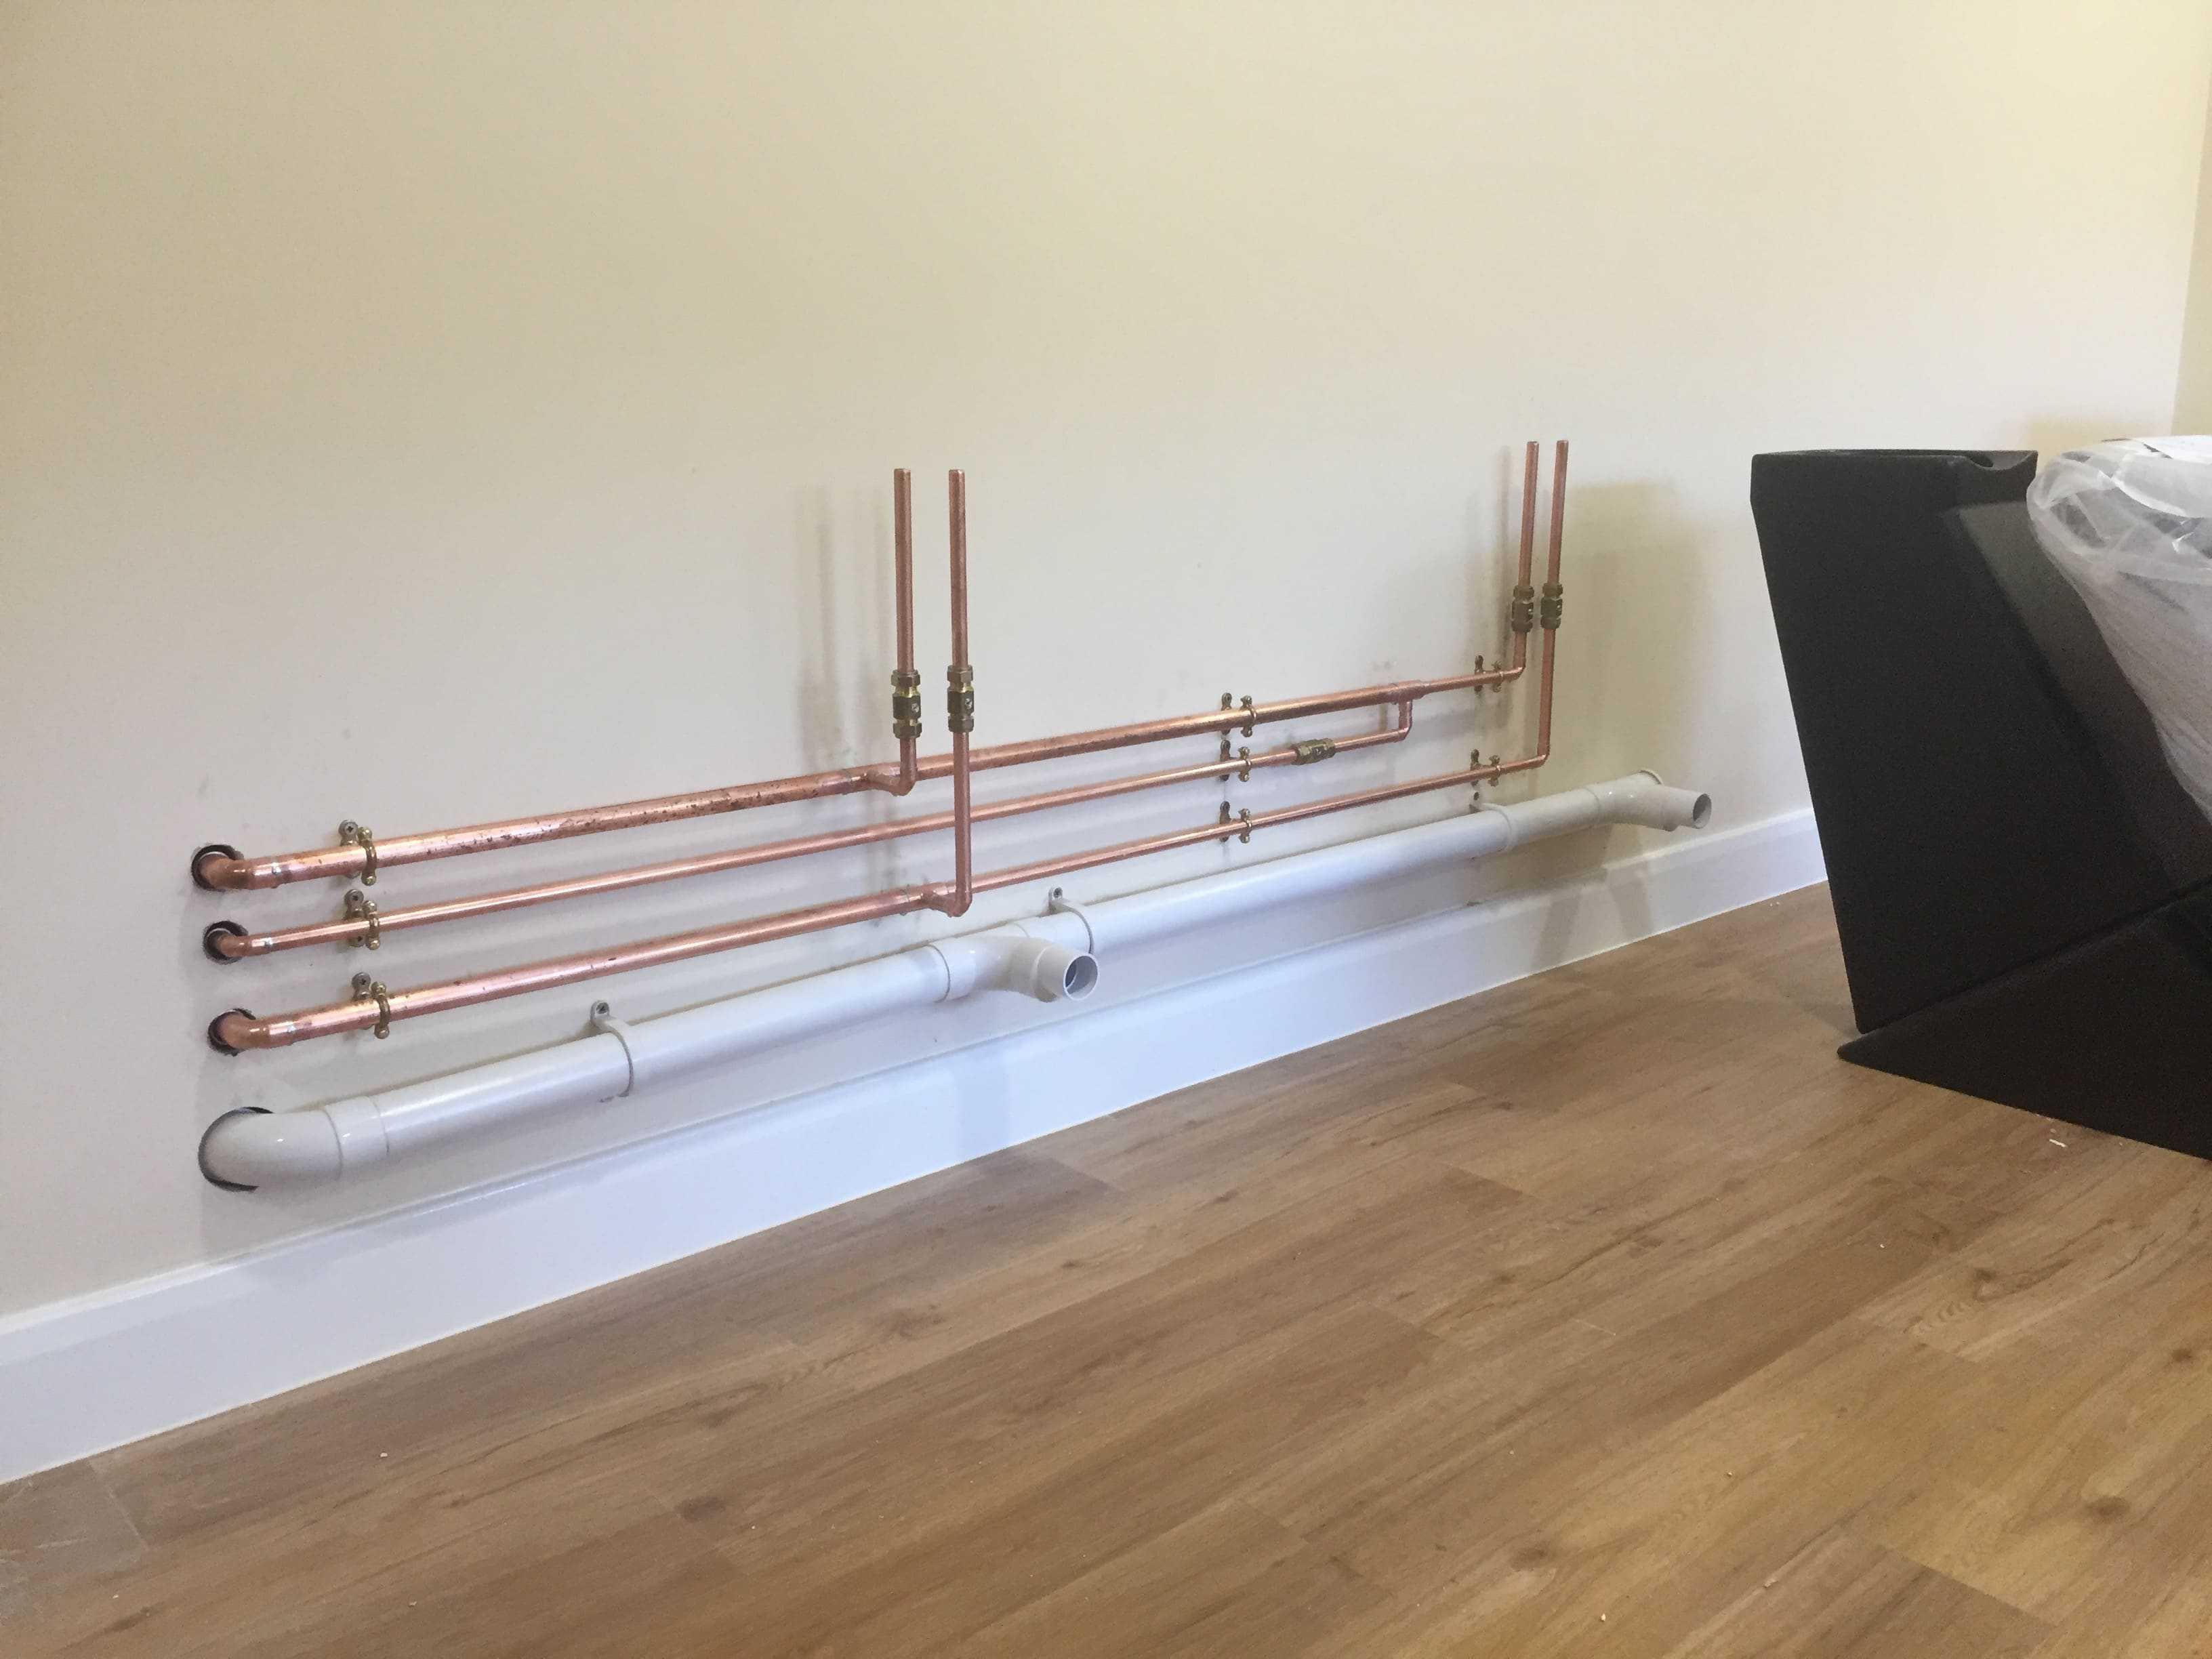 Plant room, heating & domestic services installation.